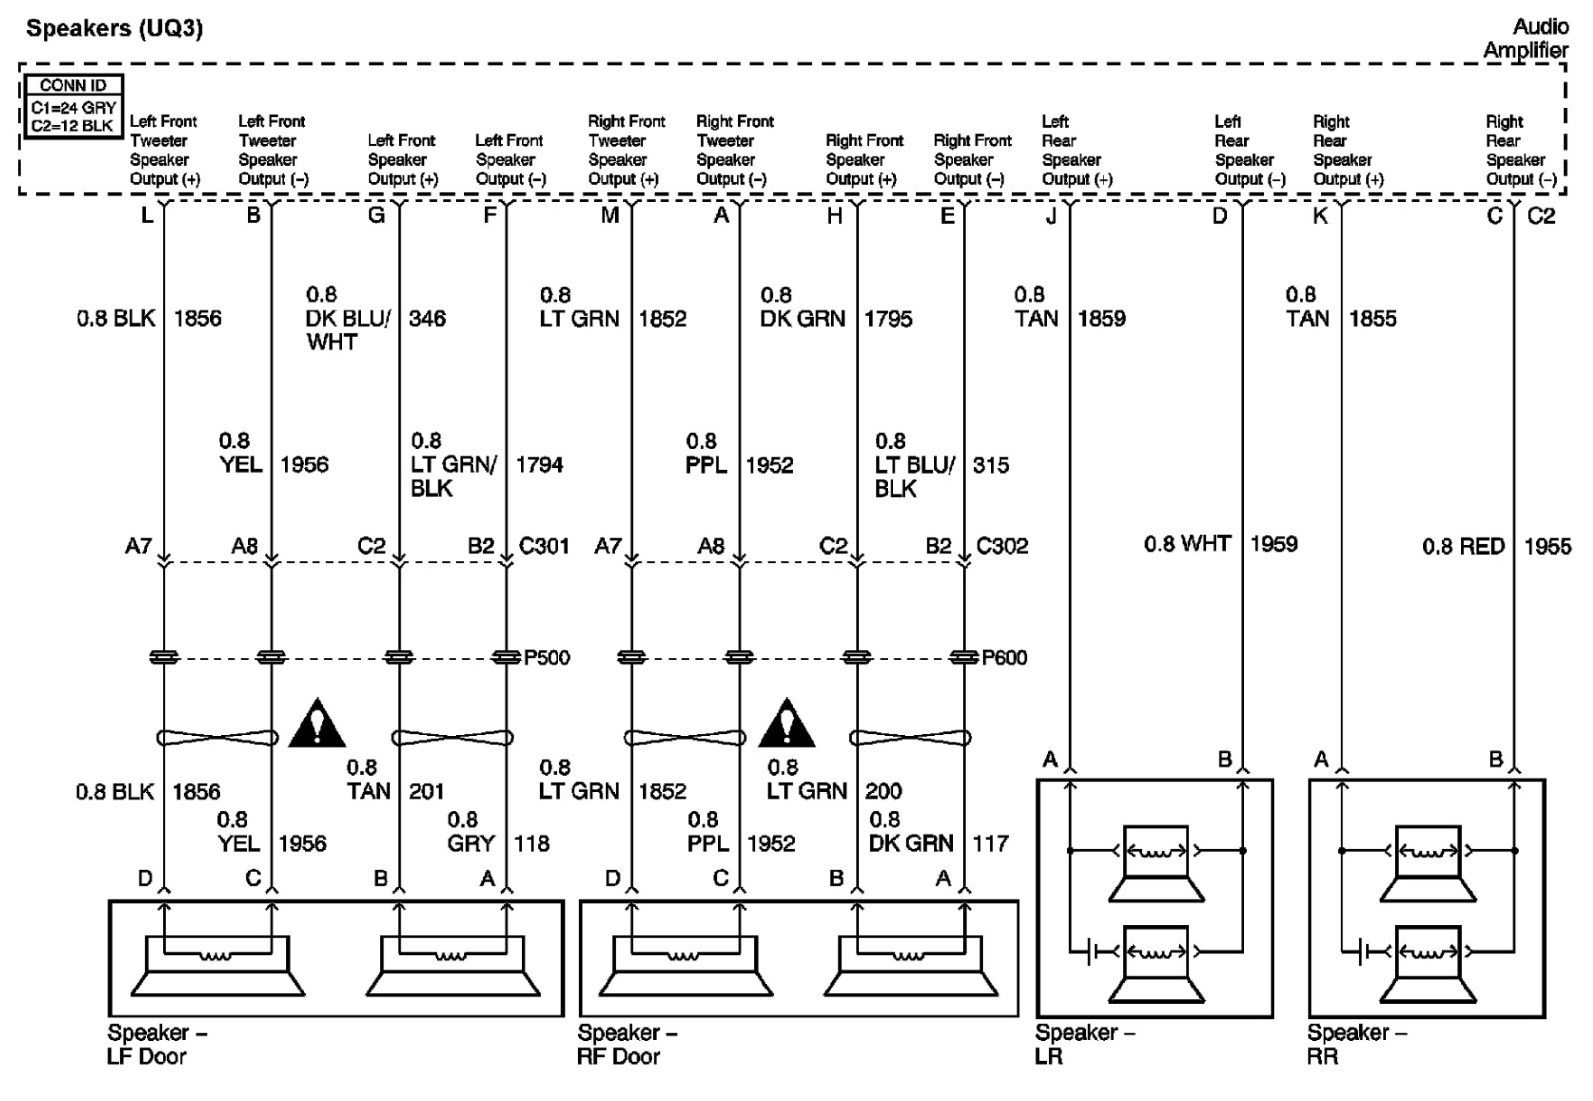 2007 Monte Carlo Stereo Wiring Diagram FULL HD Version Wiring Diagram -  ARROW-DIAGRAM.EMBALLAGES-SOUS-VIDE.FREMBALLAGES-SOUS-VIDE.FR